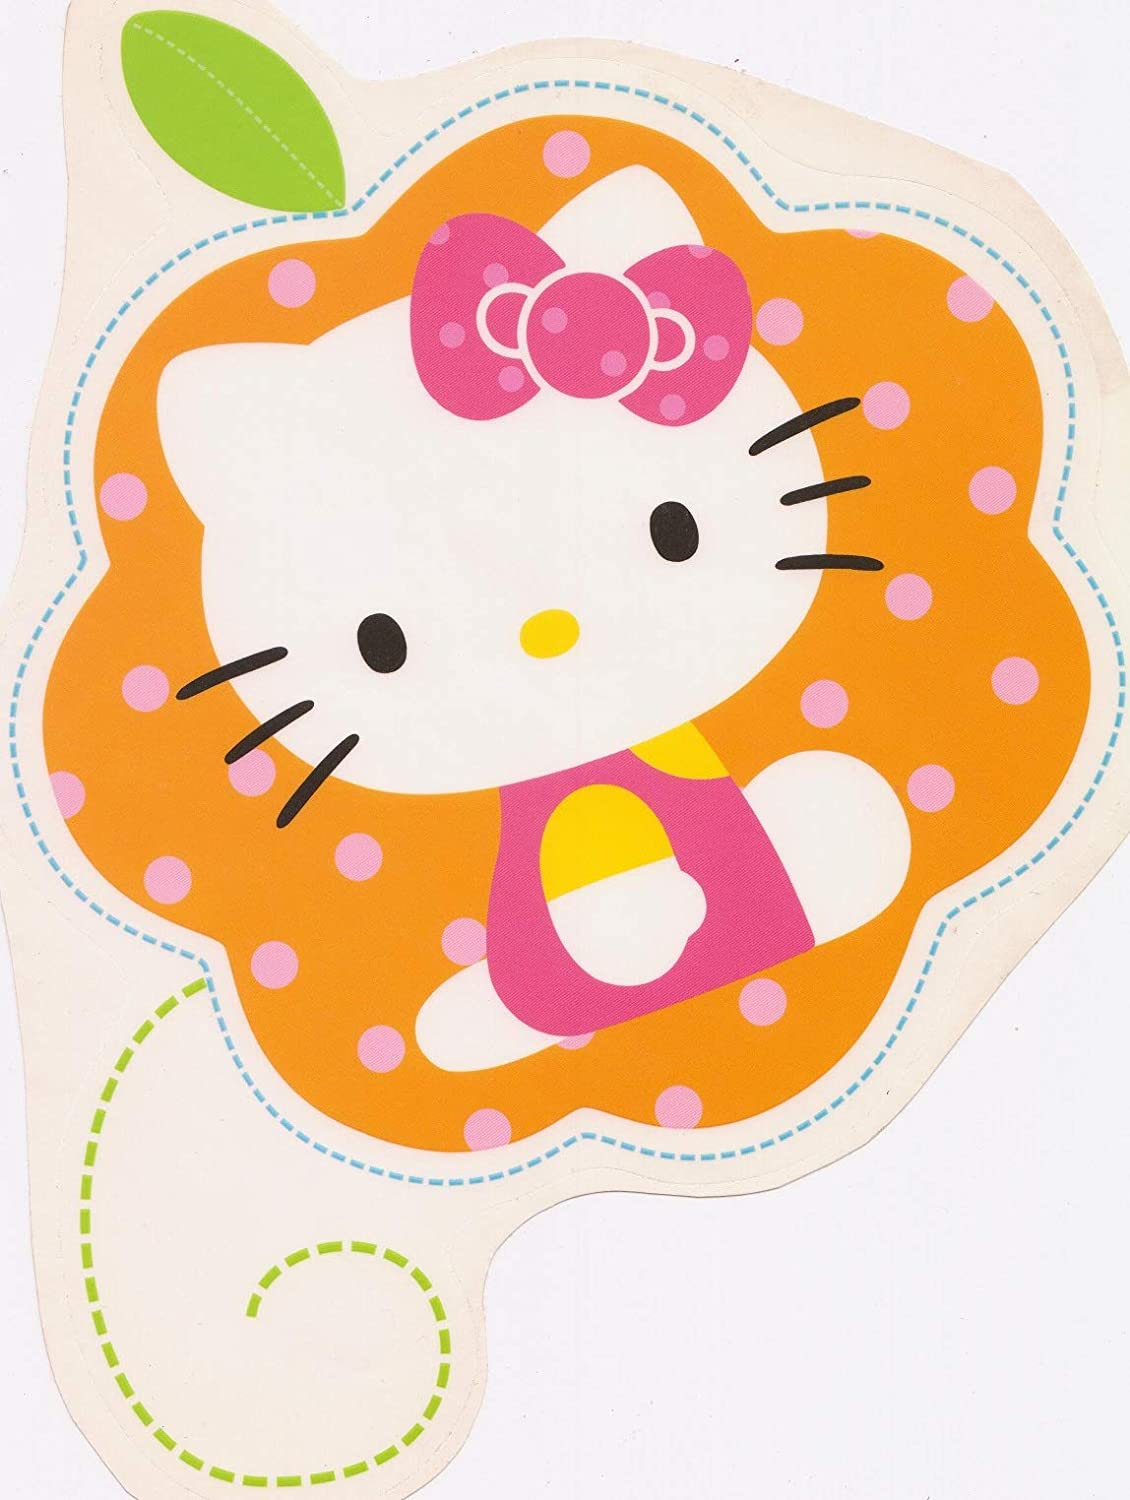 10 Inch Floral Hello Kitty Decal Sanrio Removable Peel Self Stick Wall Sticker Art (Decoration for Walls Laptop Yeti) Nursery Bedroom Home Decor Girls Room 9 x 10 Inch Tall